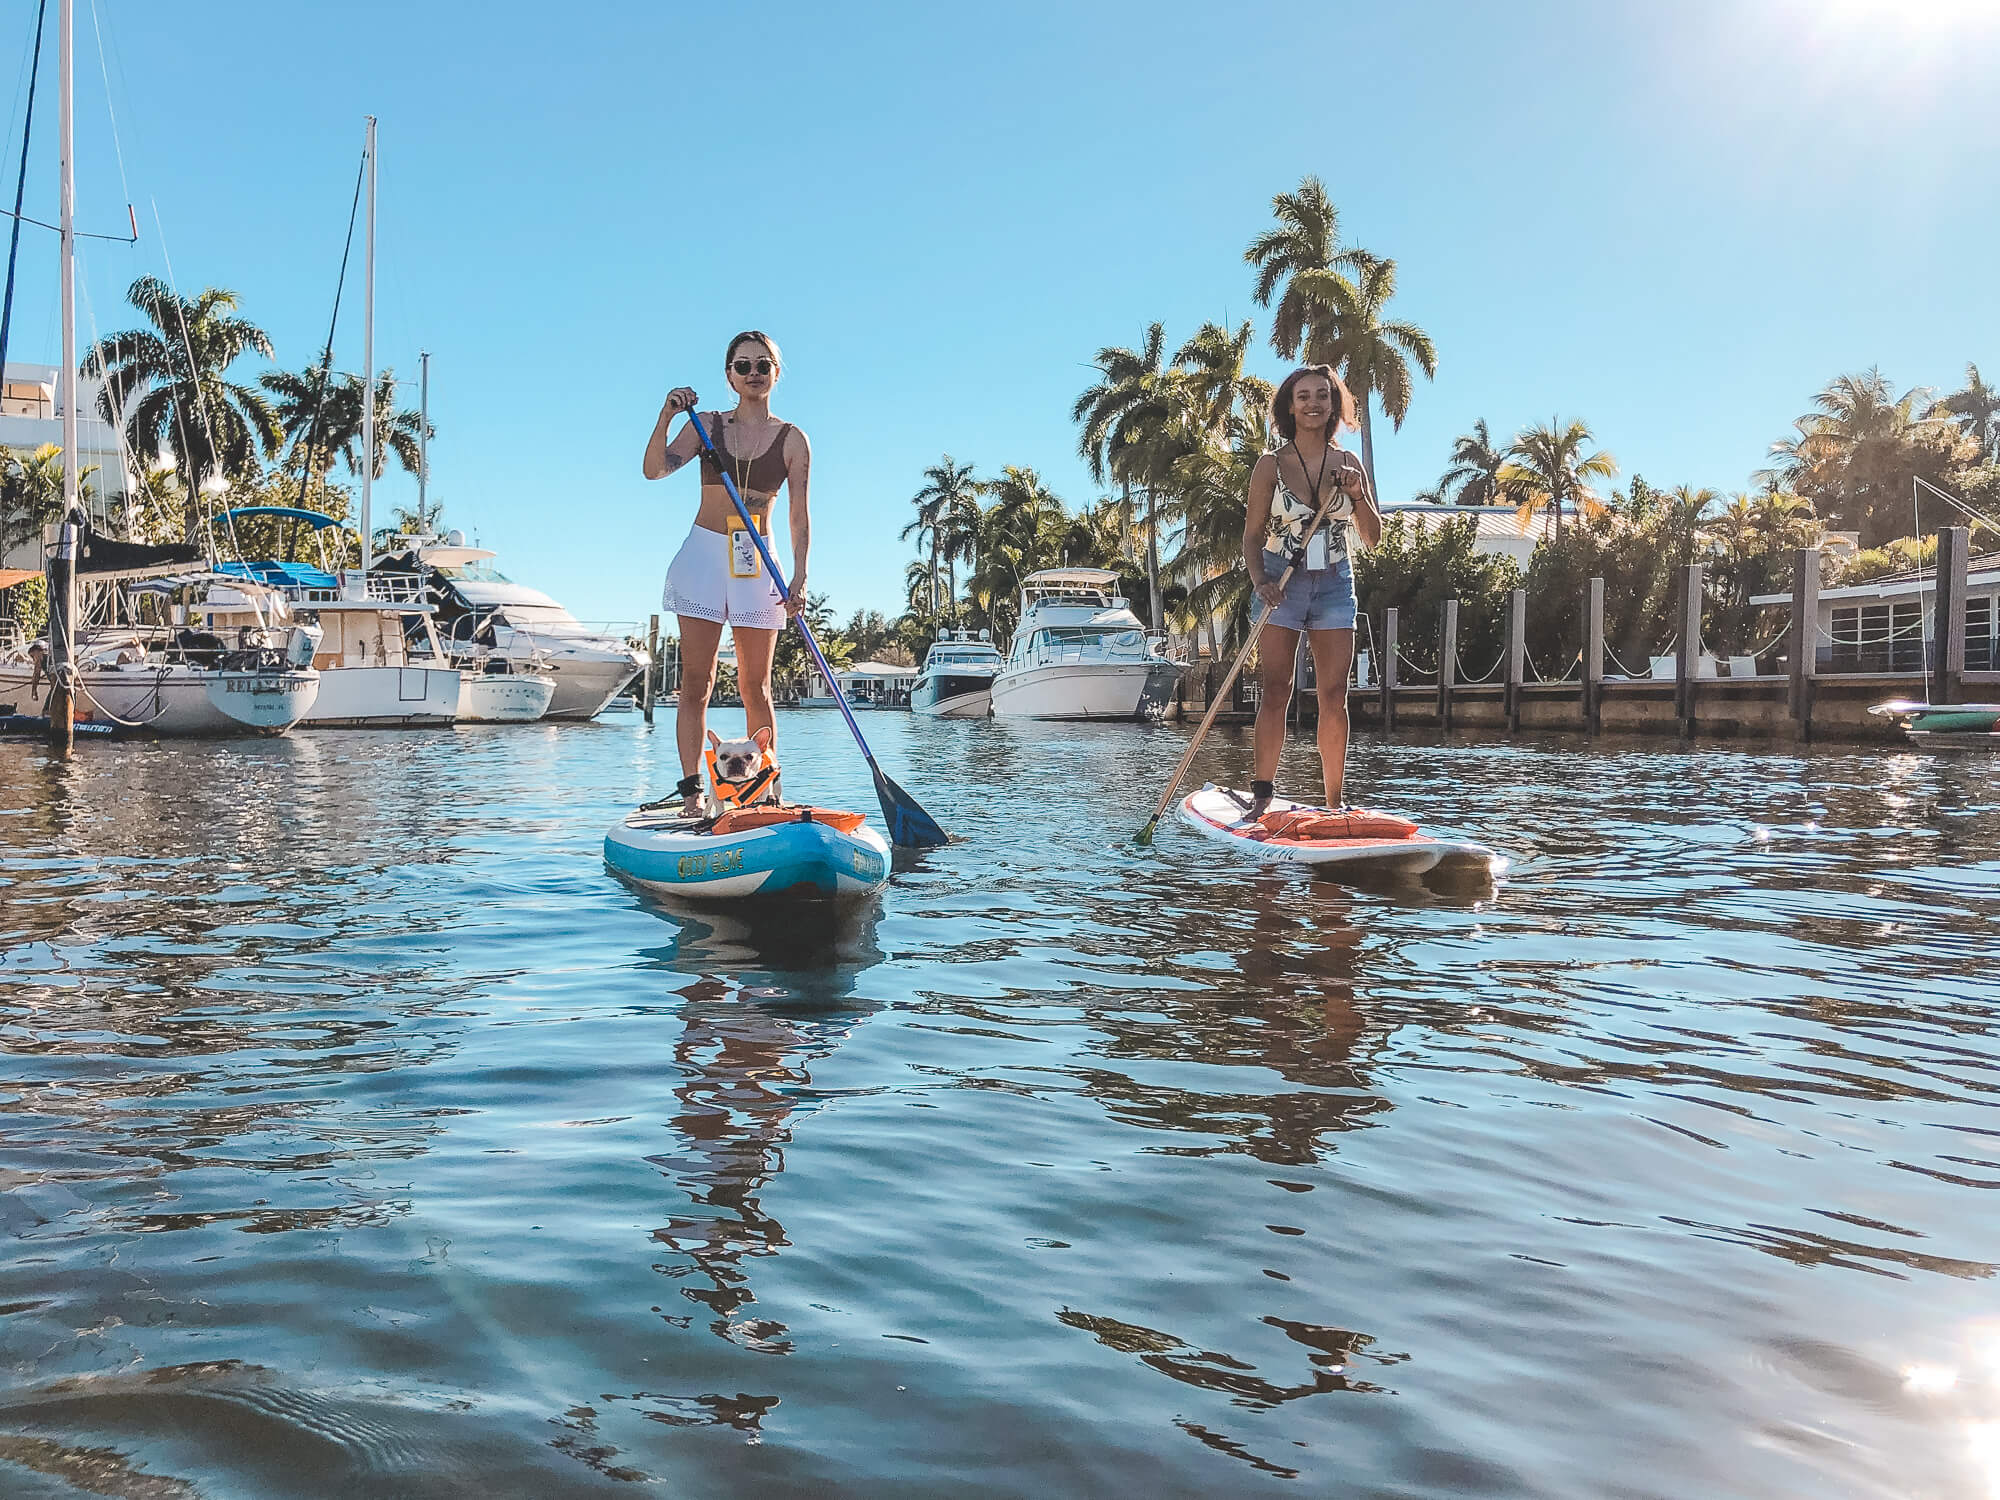 Paddle boarding in Florida - ochristine